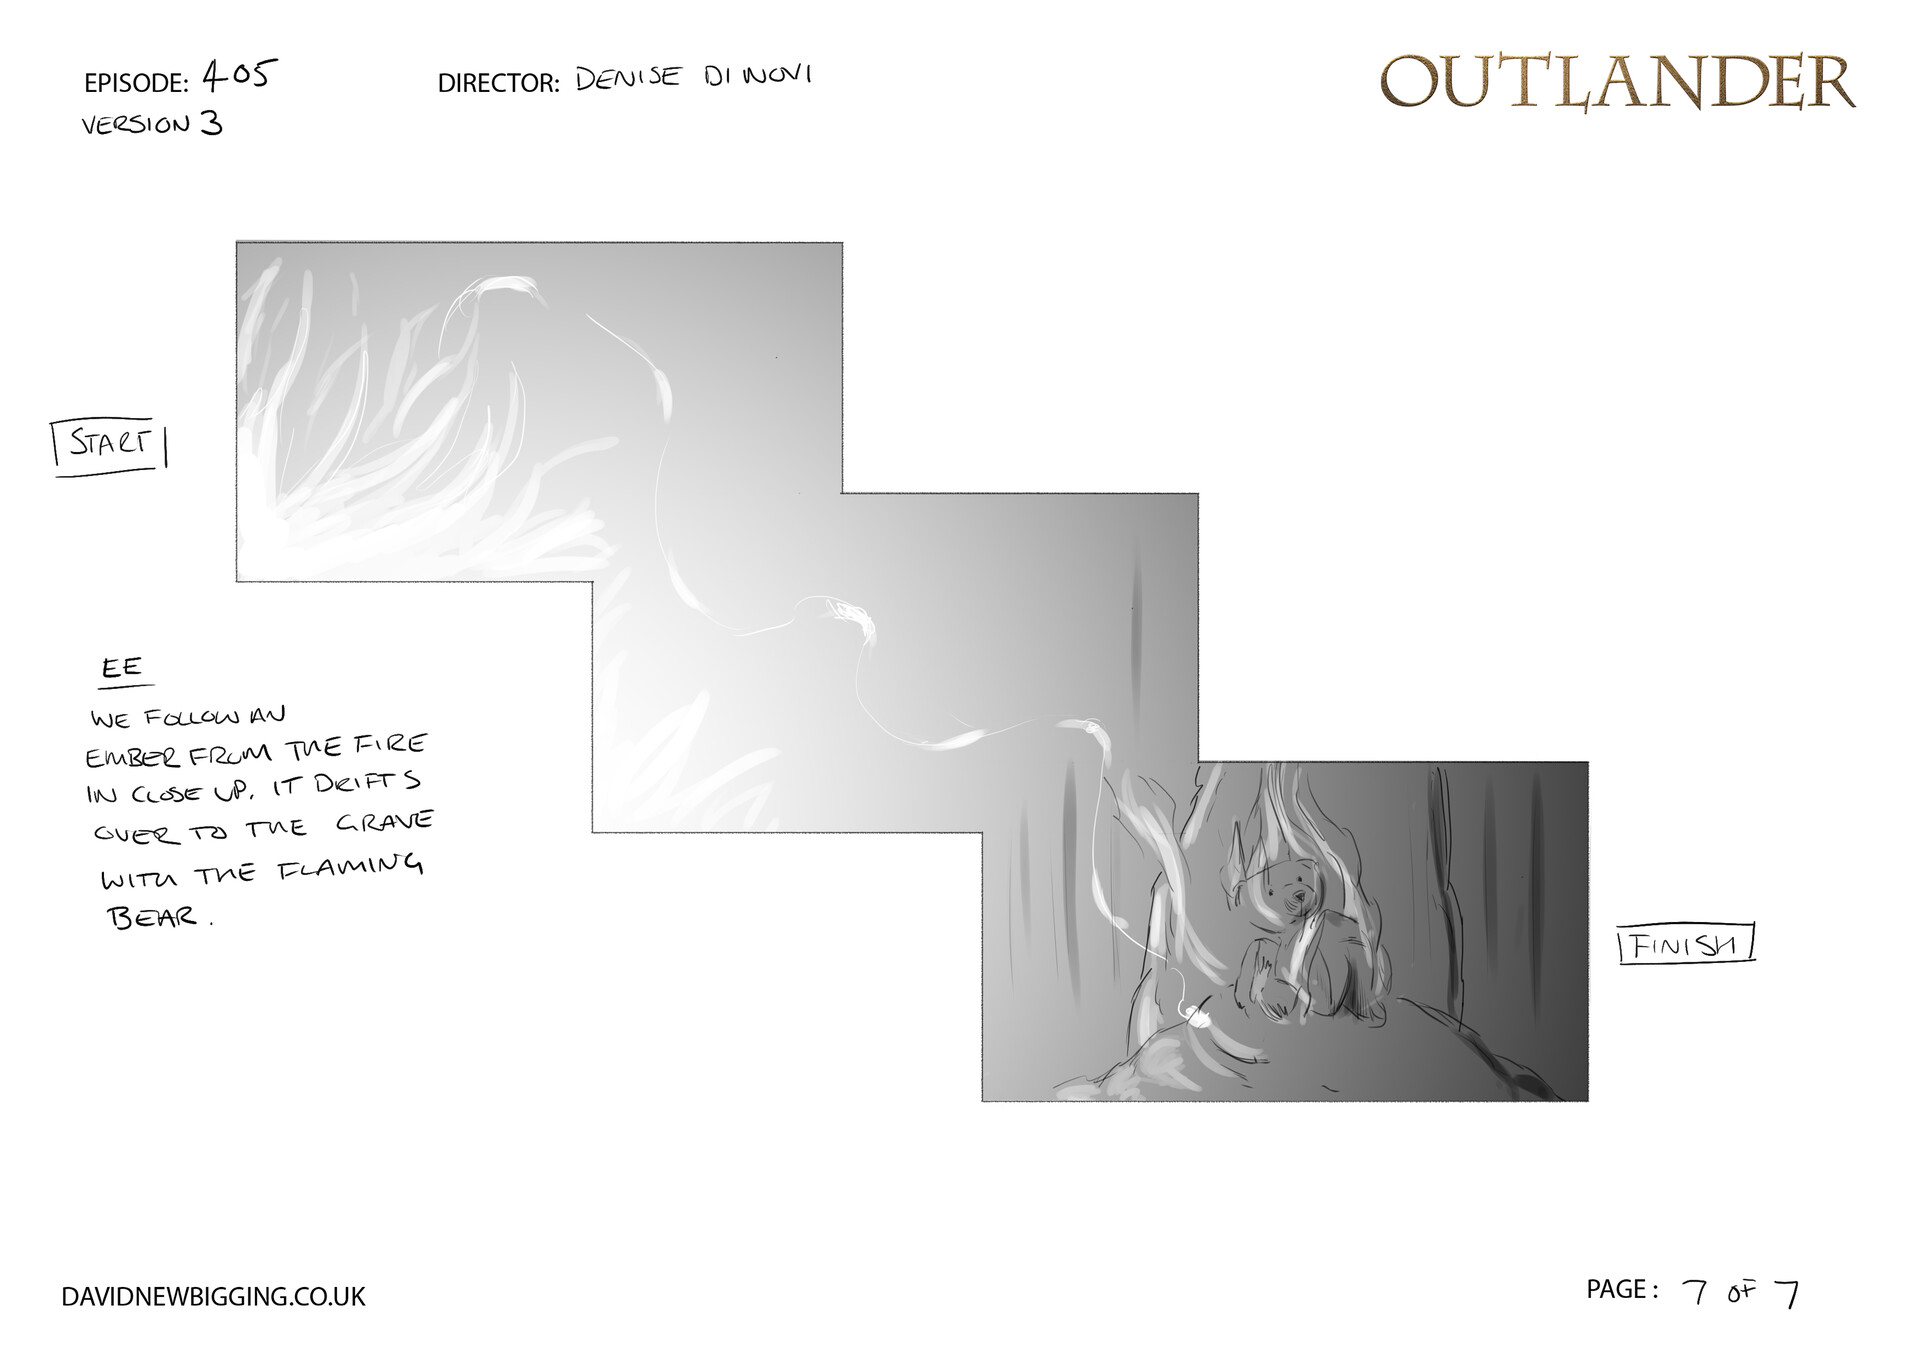 David newbigging outlander 405 cabin burning sequence storyboards version 3 7